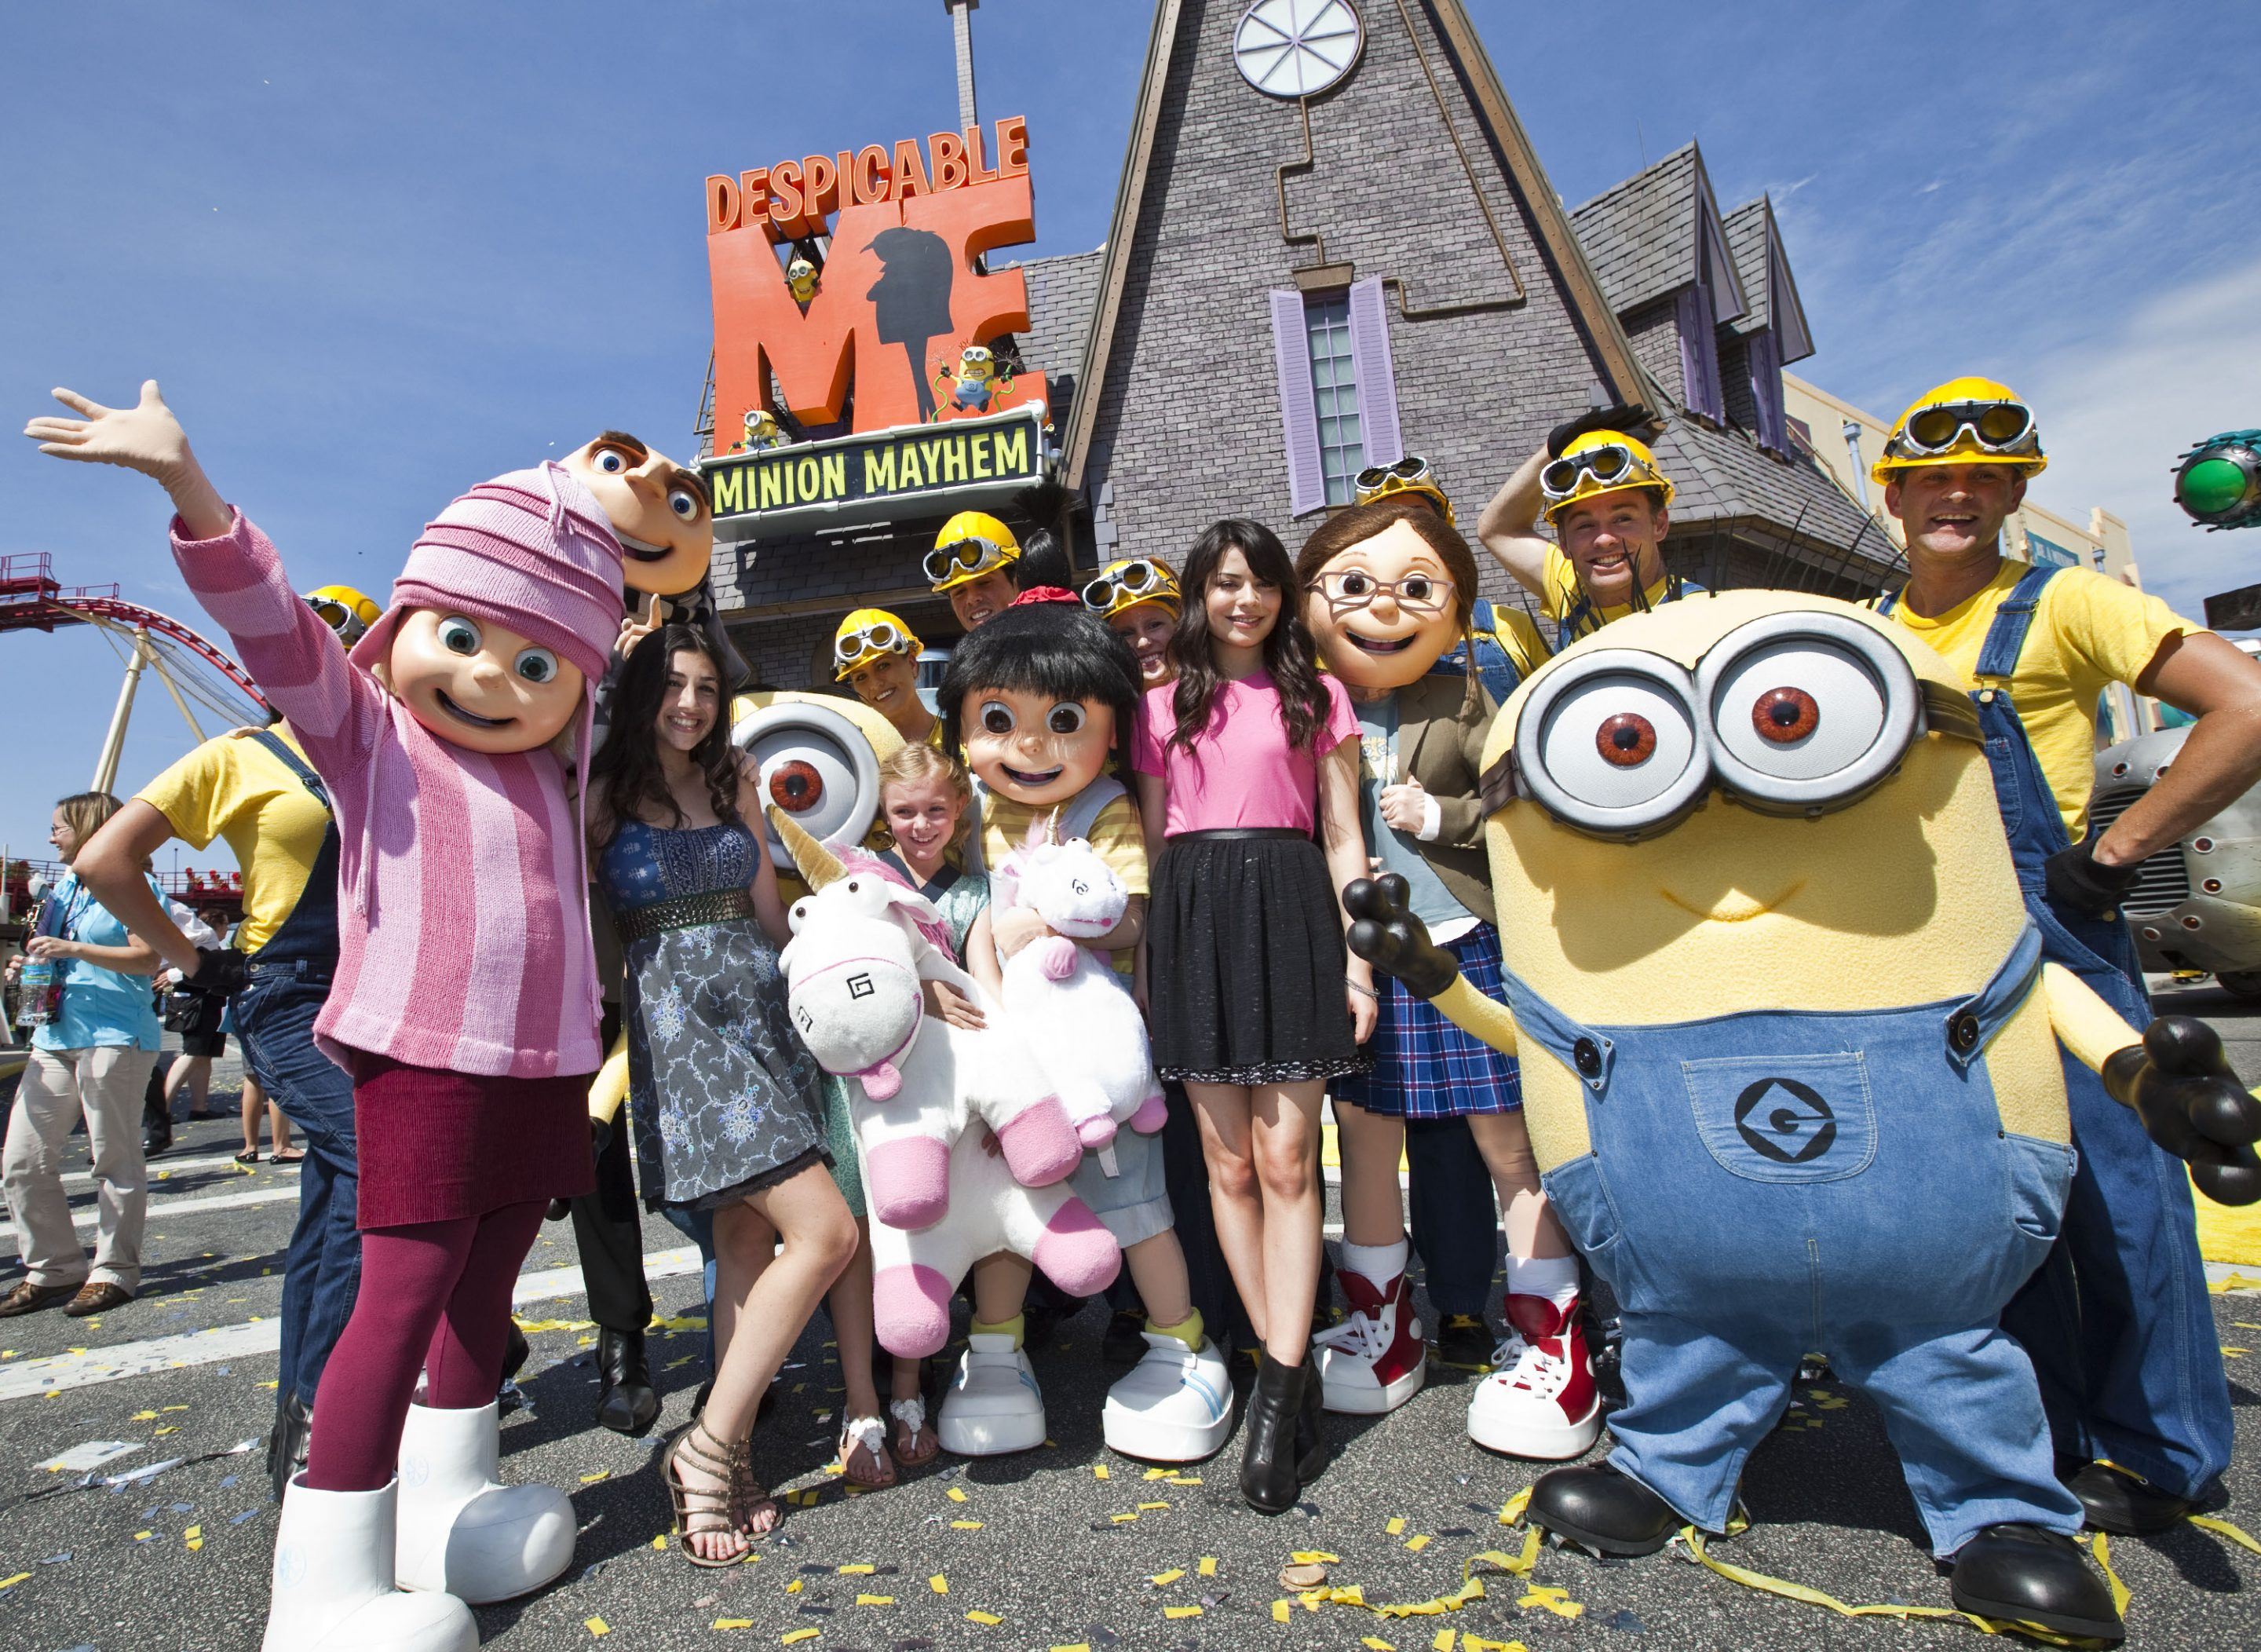 Miranda Cosgrove Celebrates Despicable Me Minion Mayhem At Universal Orlando Resort